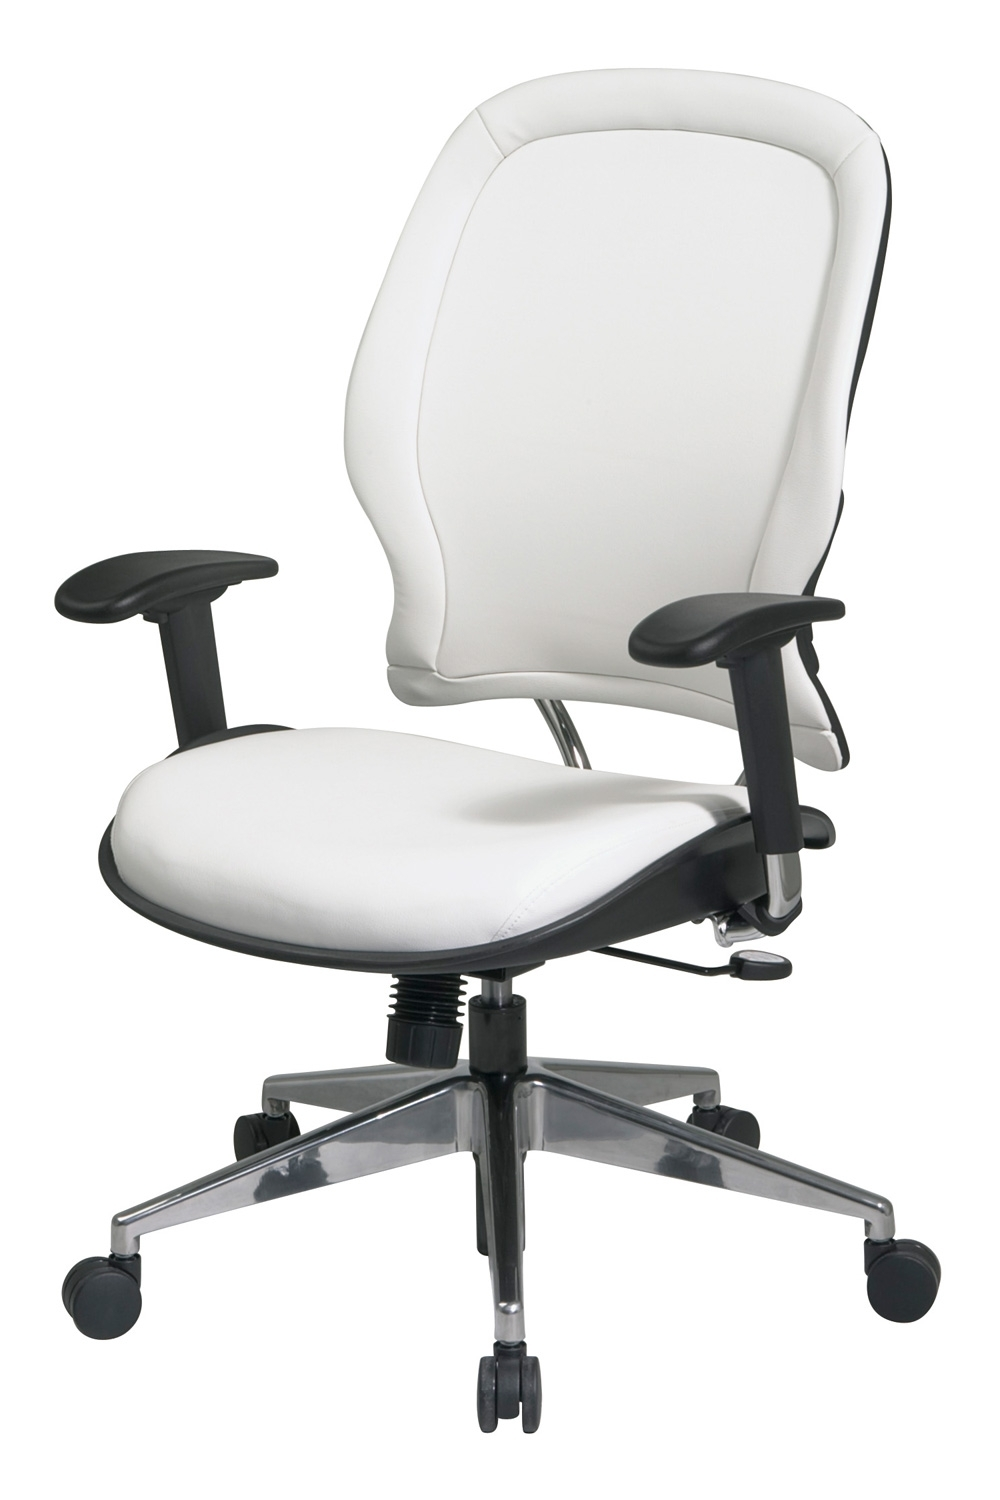 Executive Office Chairs With Back Support In 2019 Best Ergonomic White Office Chair Ideas – Liltigertoo (View 14 of 20)